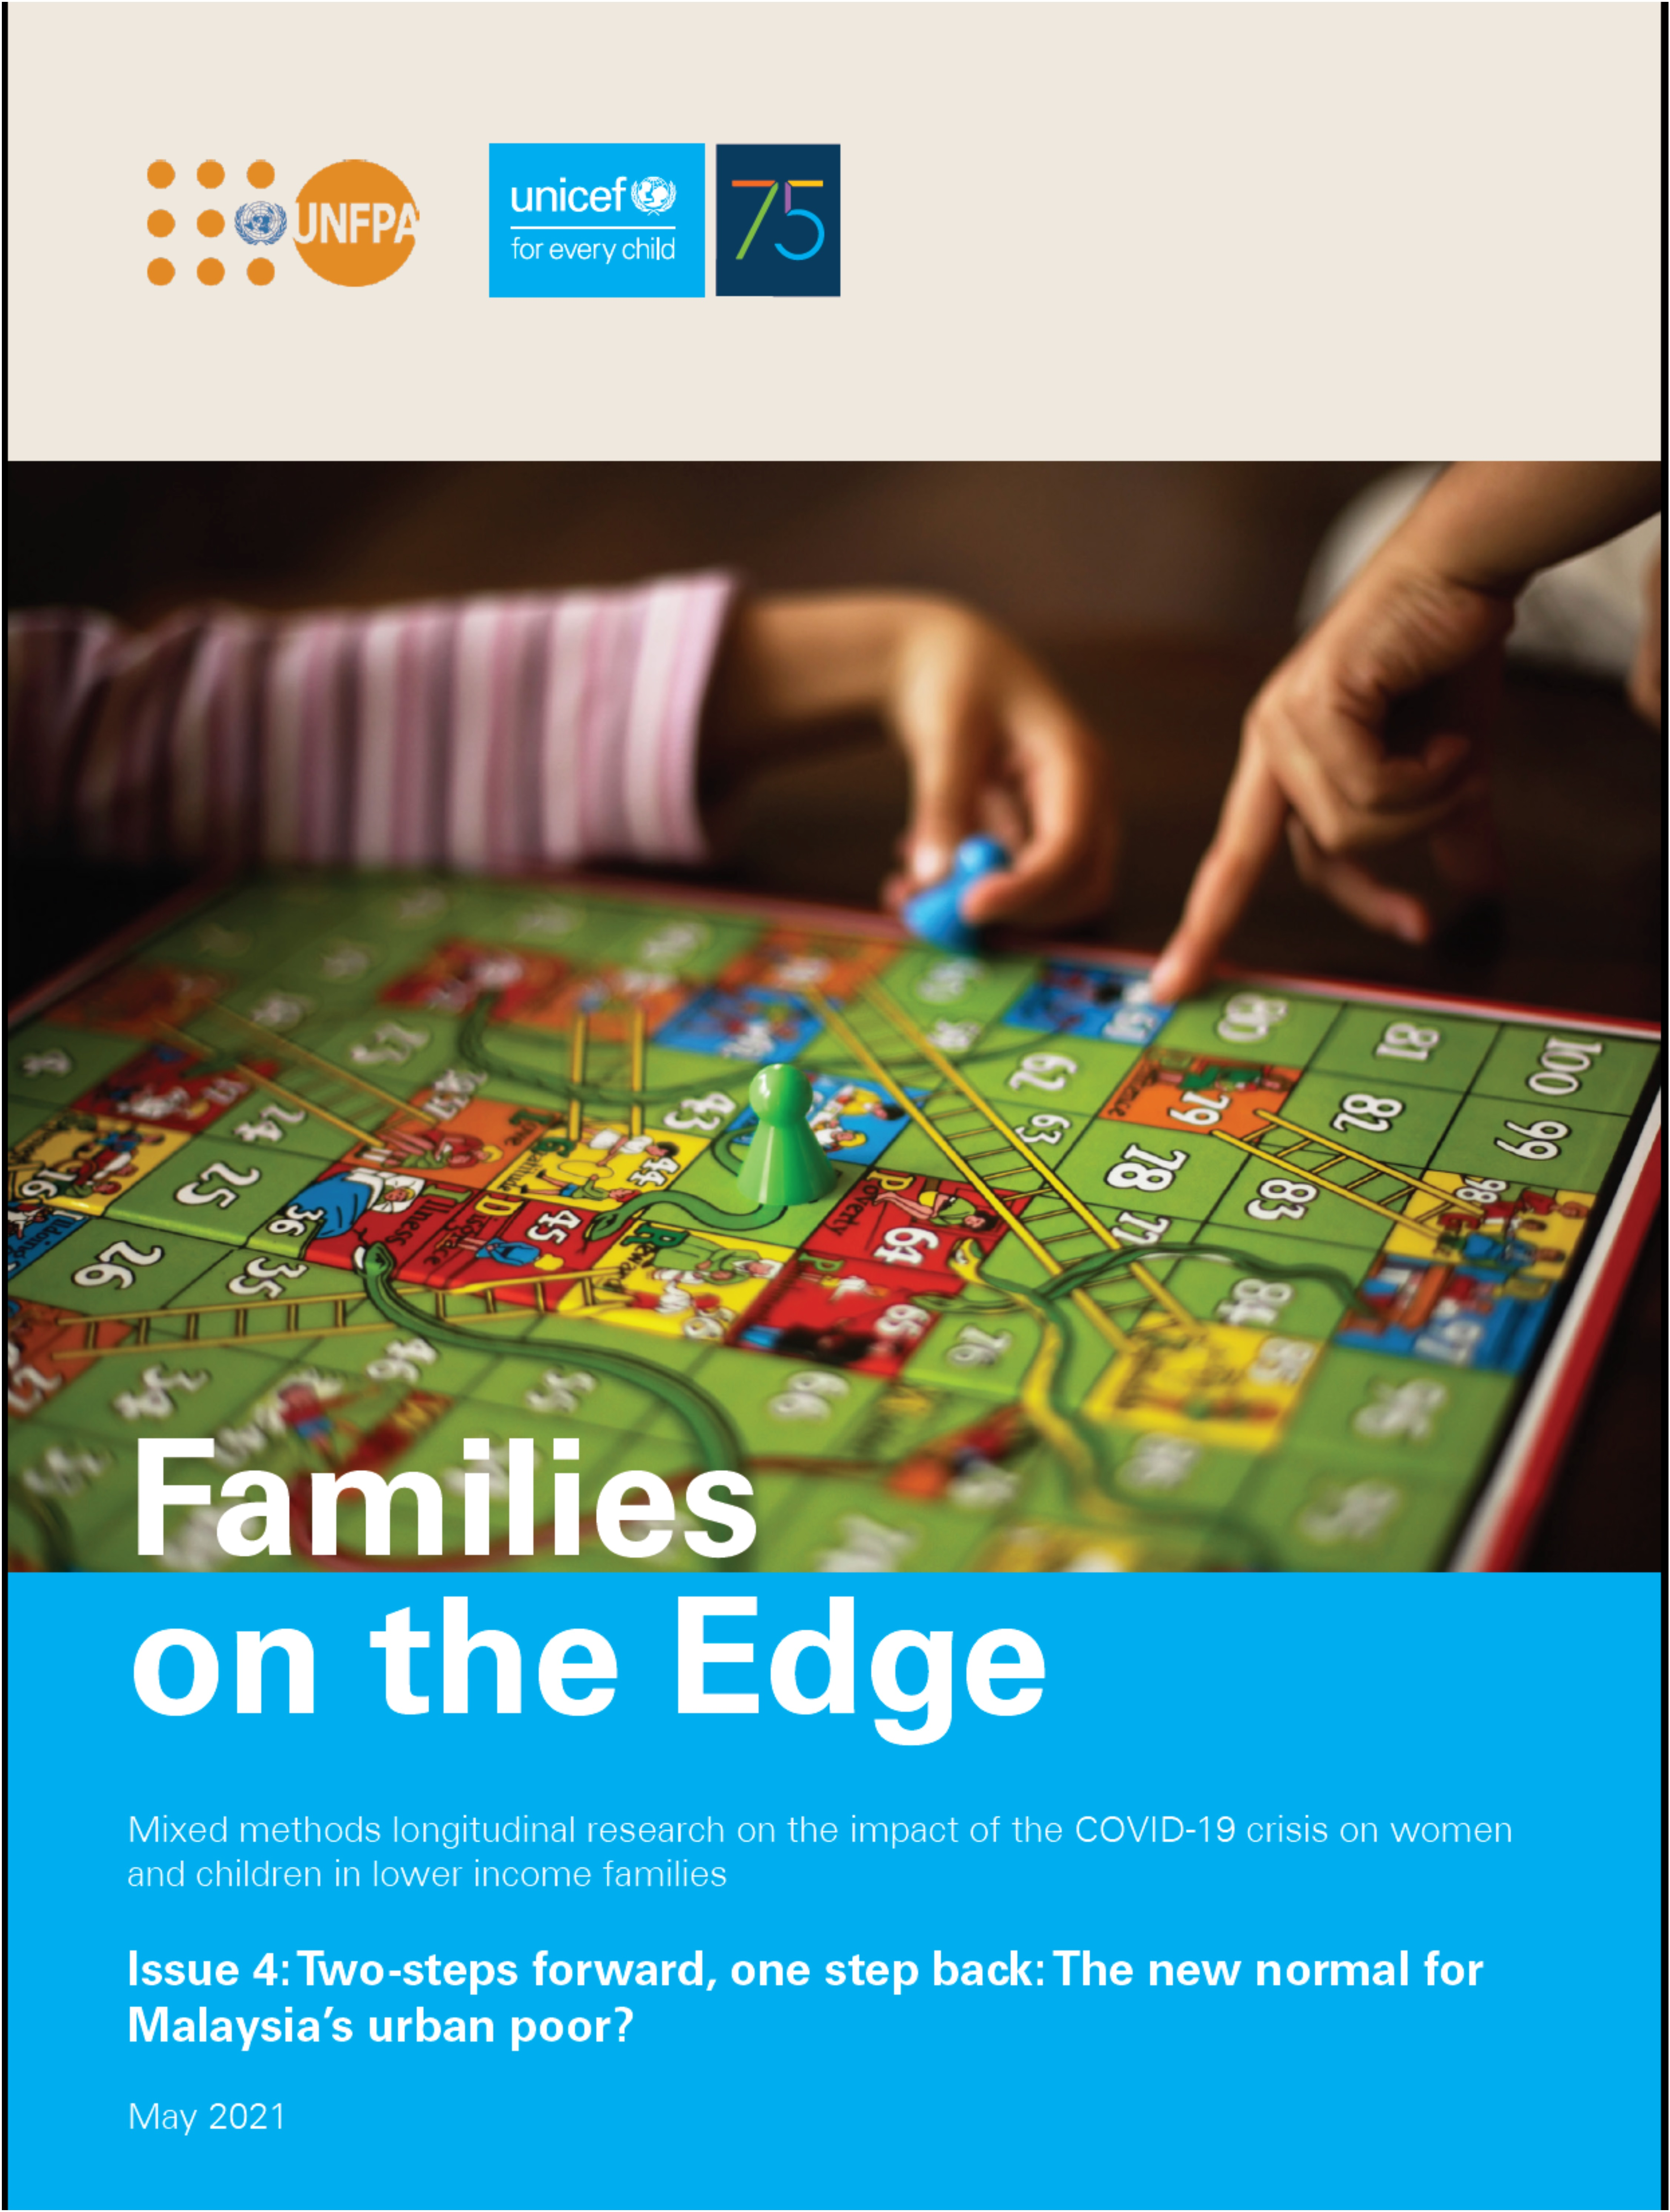 Families on the Edge (Issue 4)